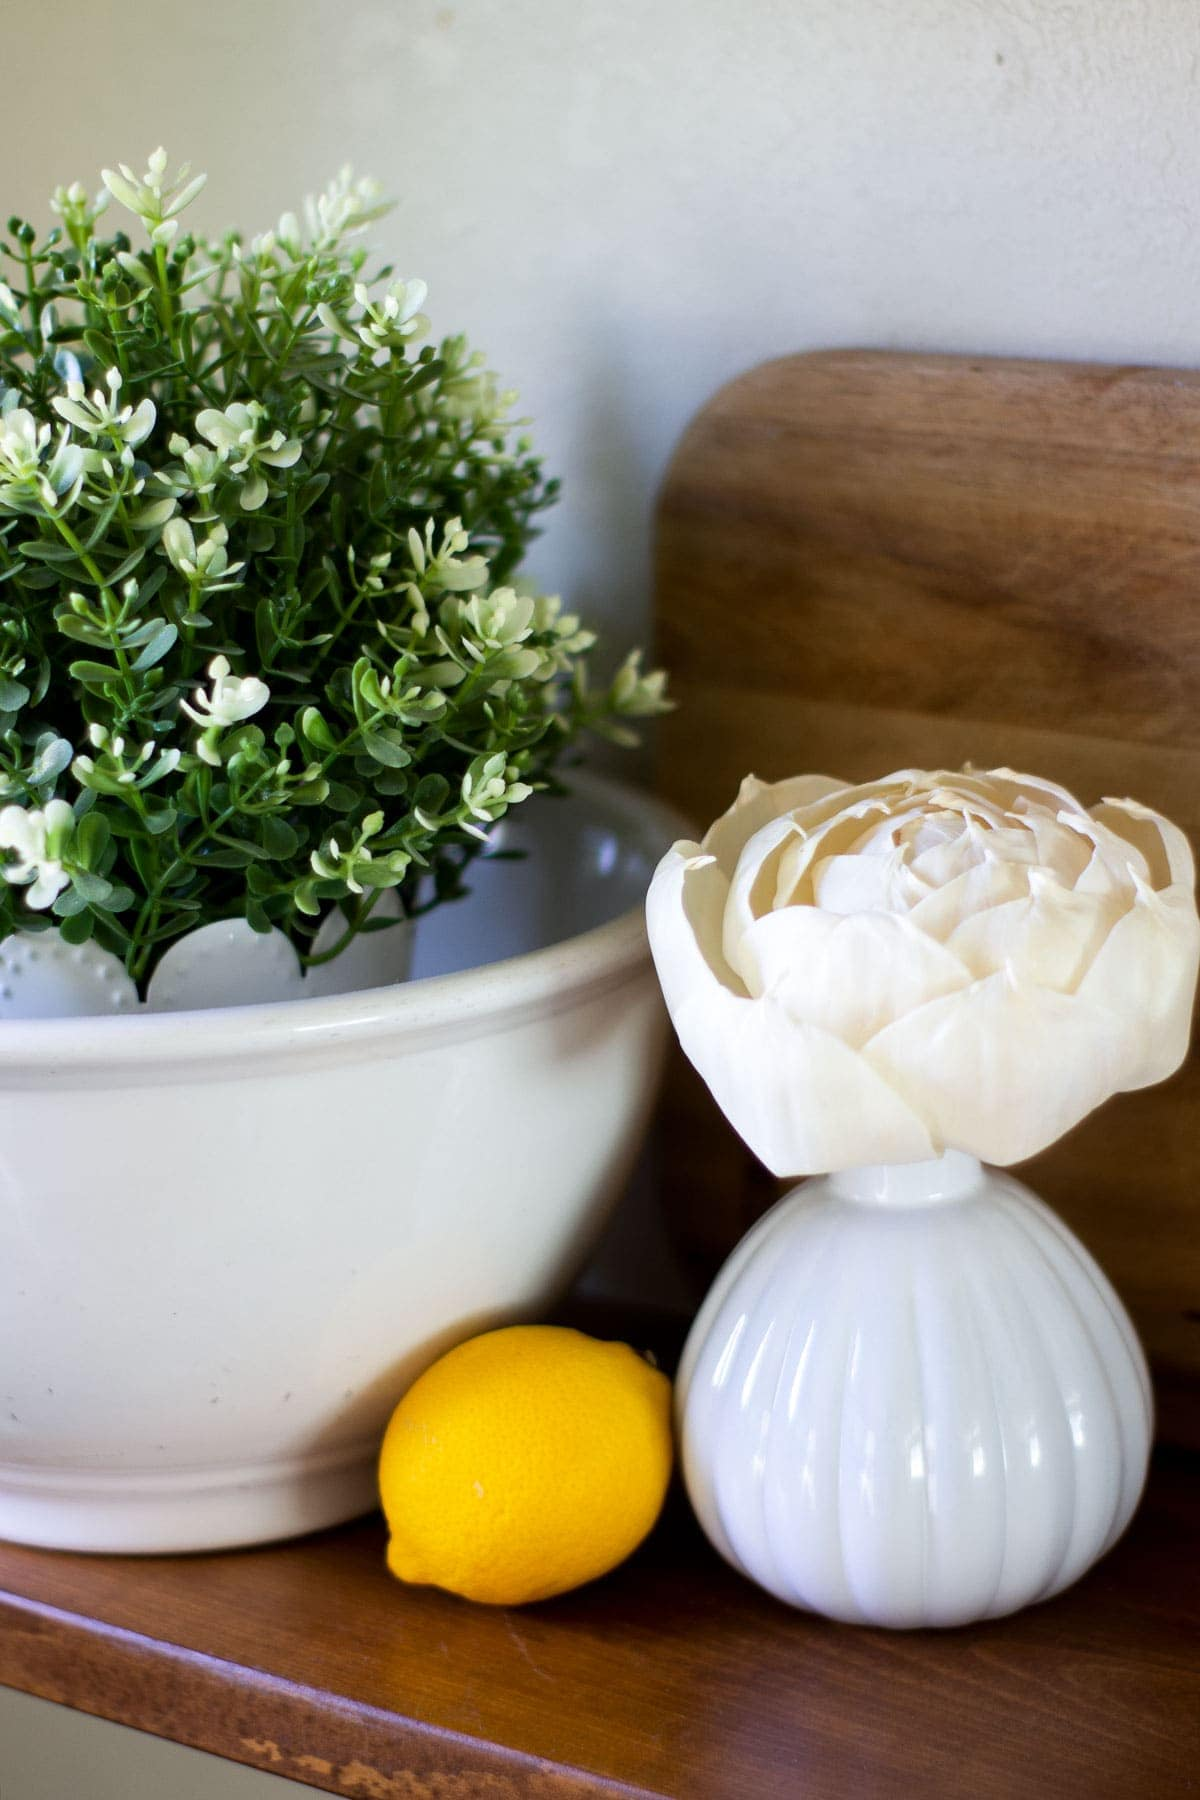 flower diffuser on shelf with lemon and ironstone bowl with greenery